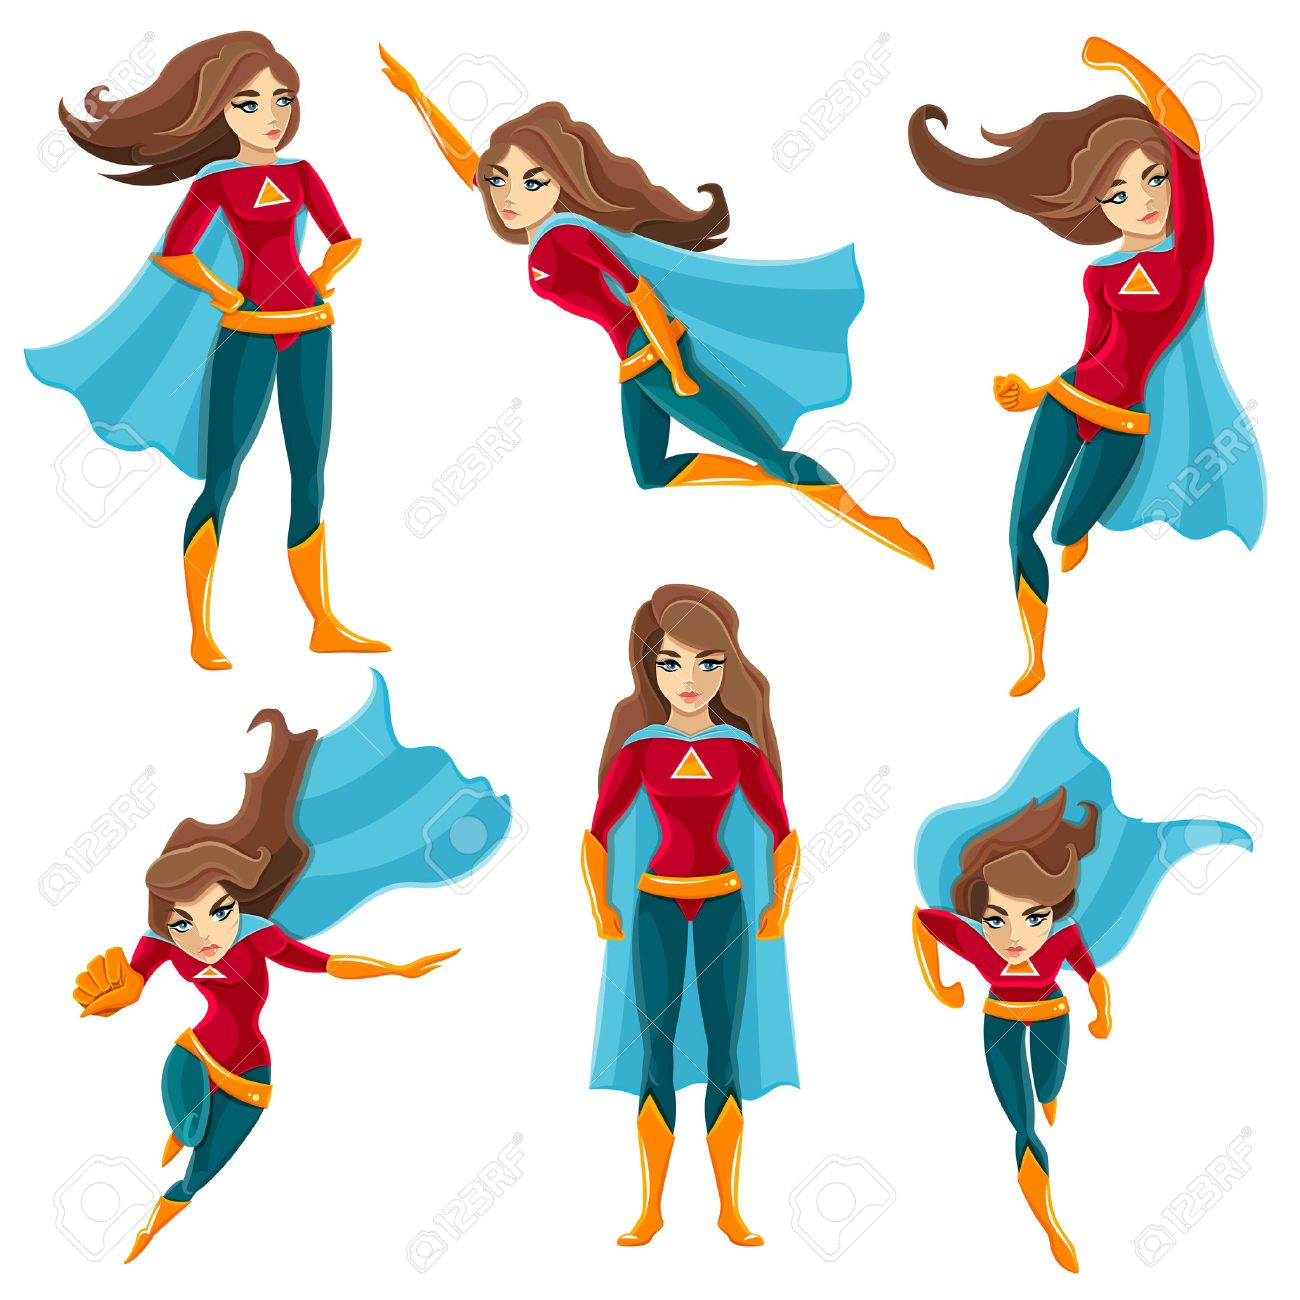 Longhaired superwoman actions set in cartoon colored style with different poses vector illustration Stock Vector - 54629321